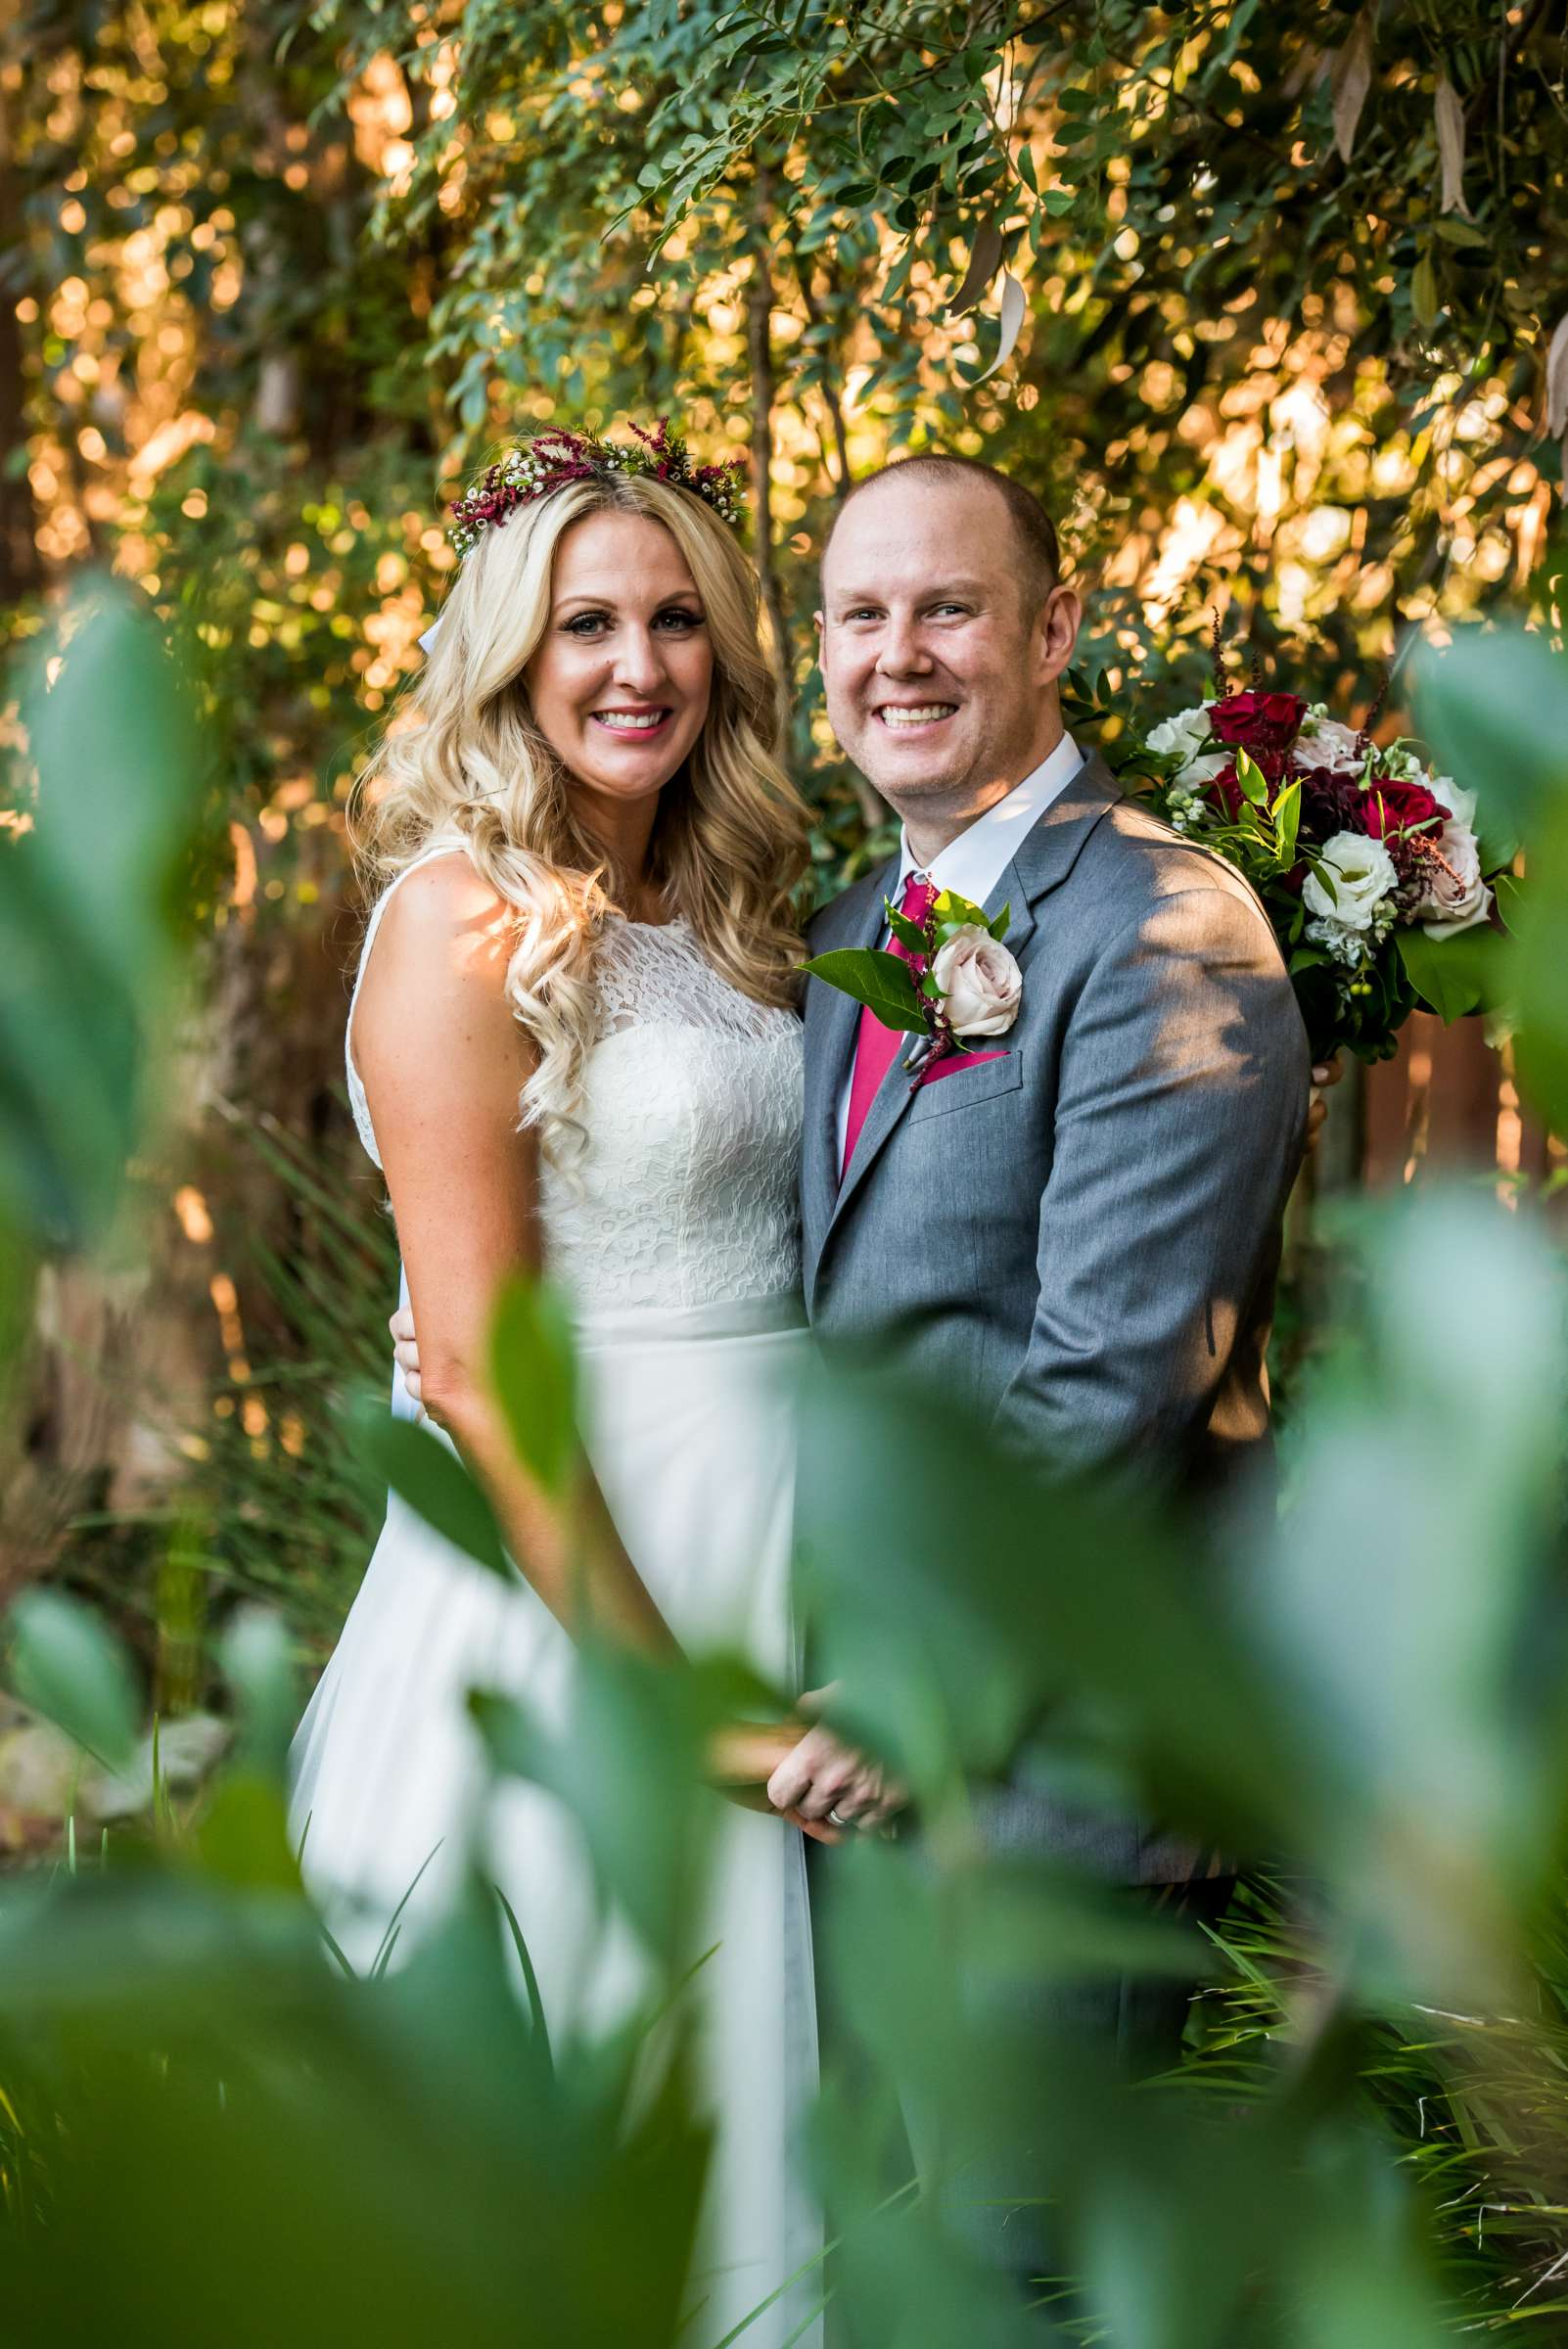 Twin Oaks House & Gardens Wedding Estate Wedding, Brittany and Sean Wedding Photo #2 by True Photography